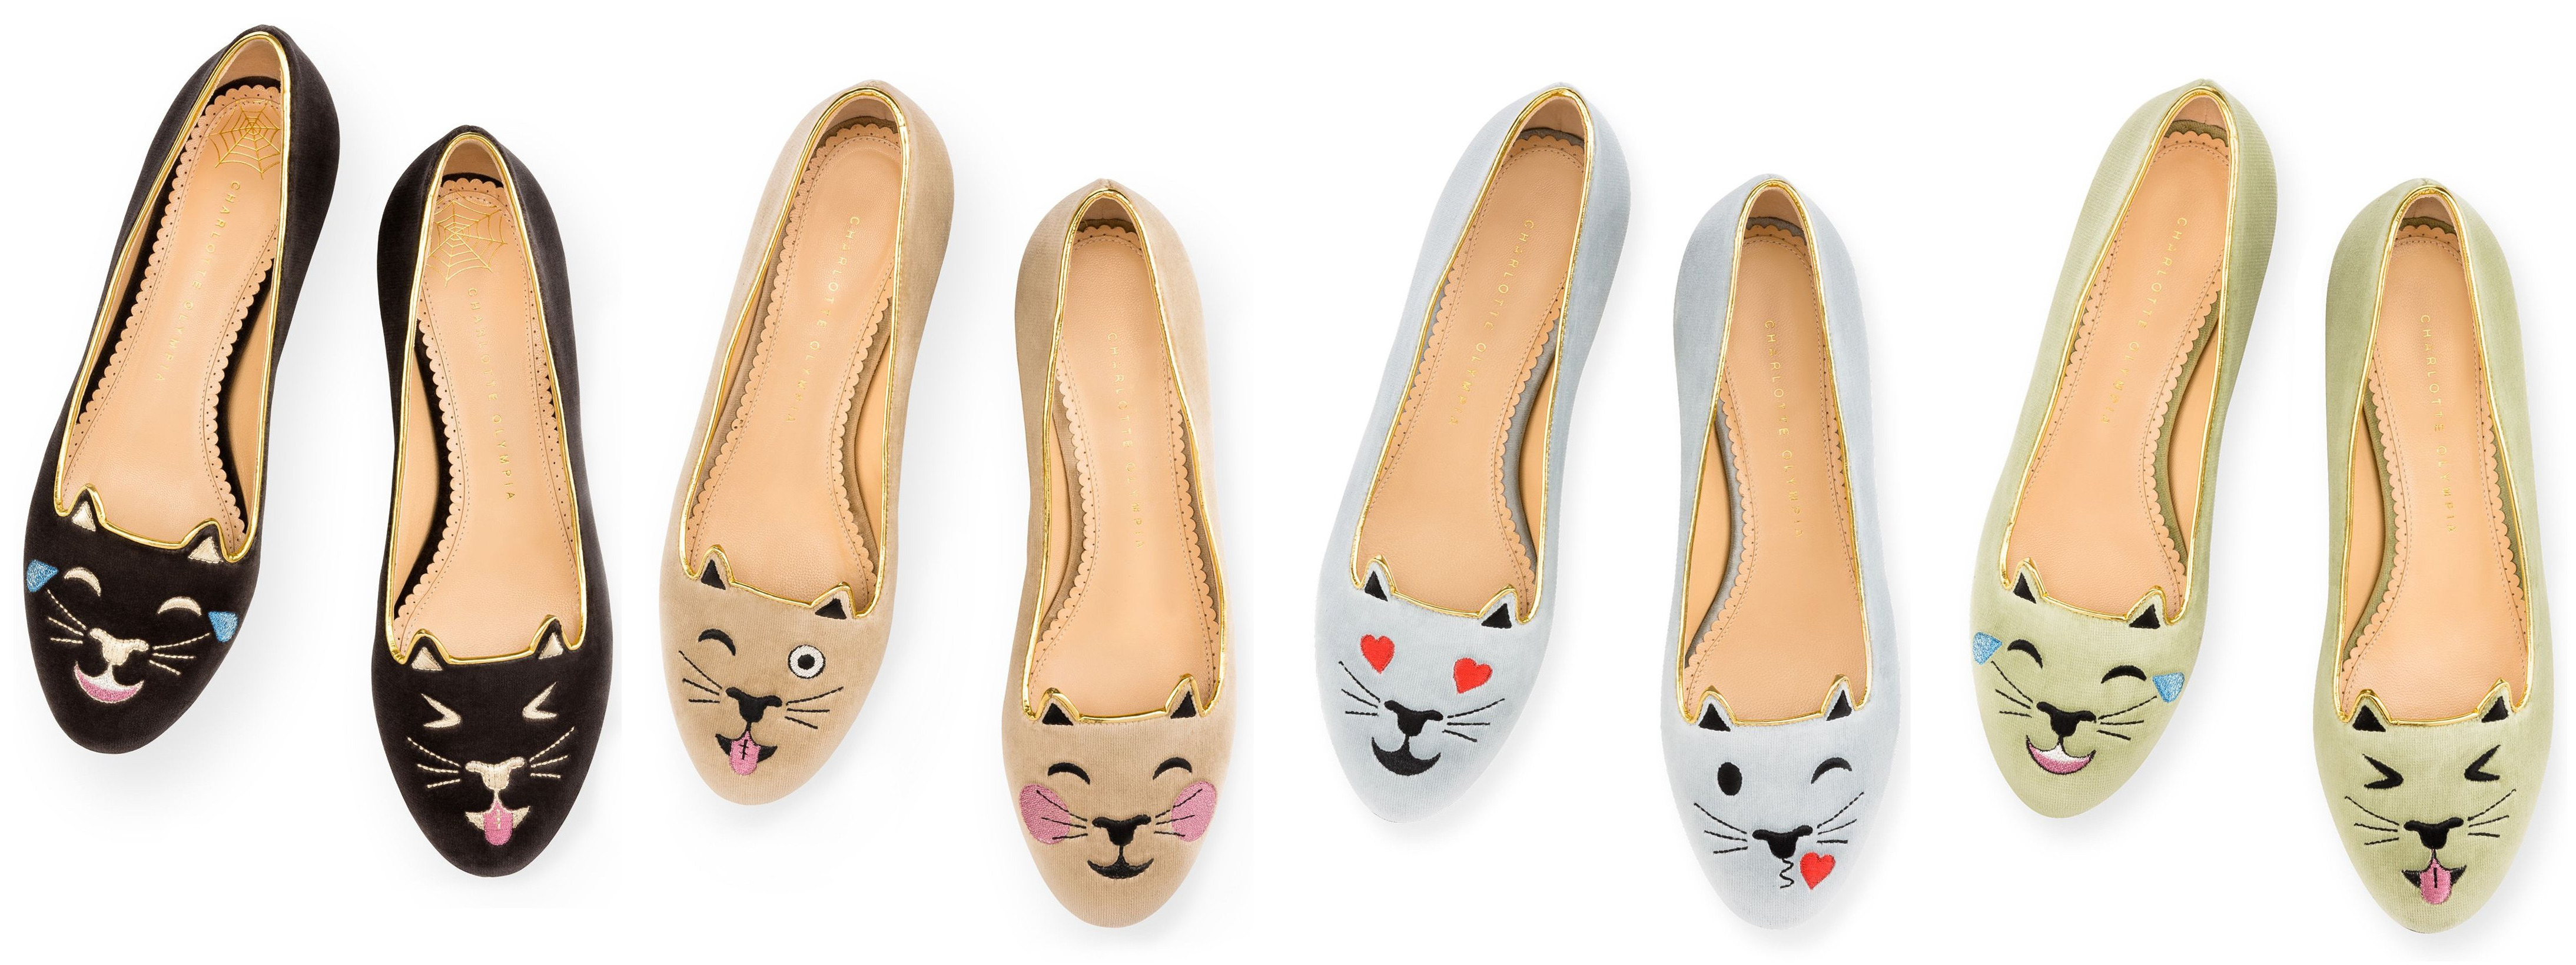 emoji and cat kitty inspired shoes